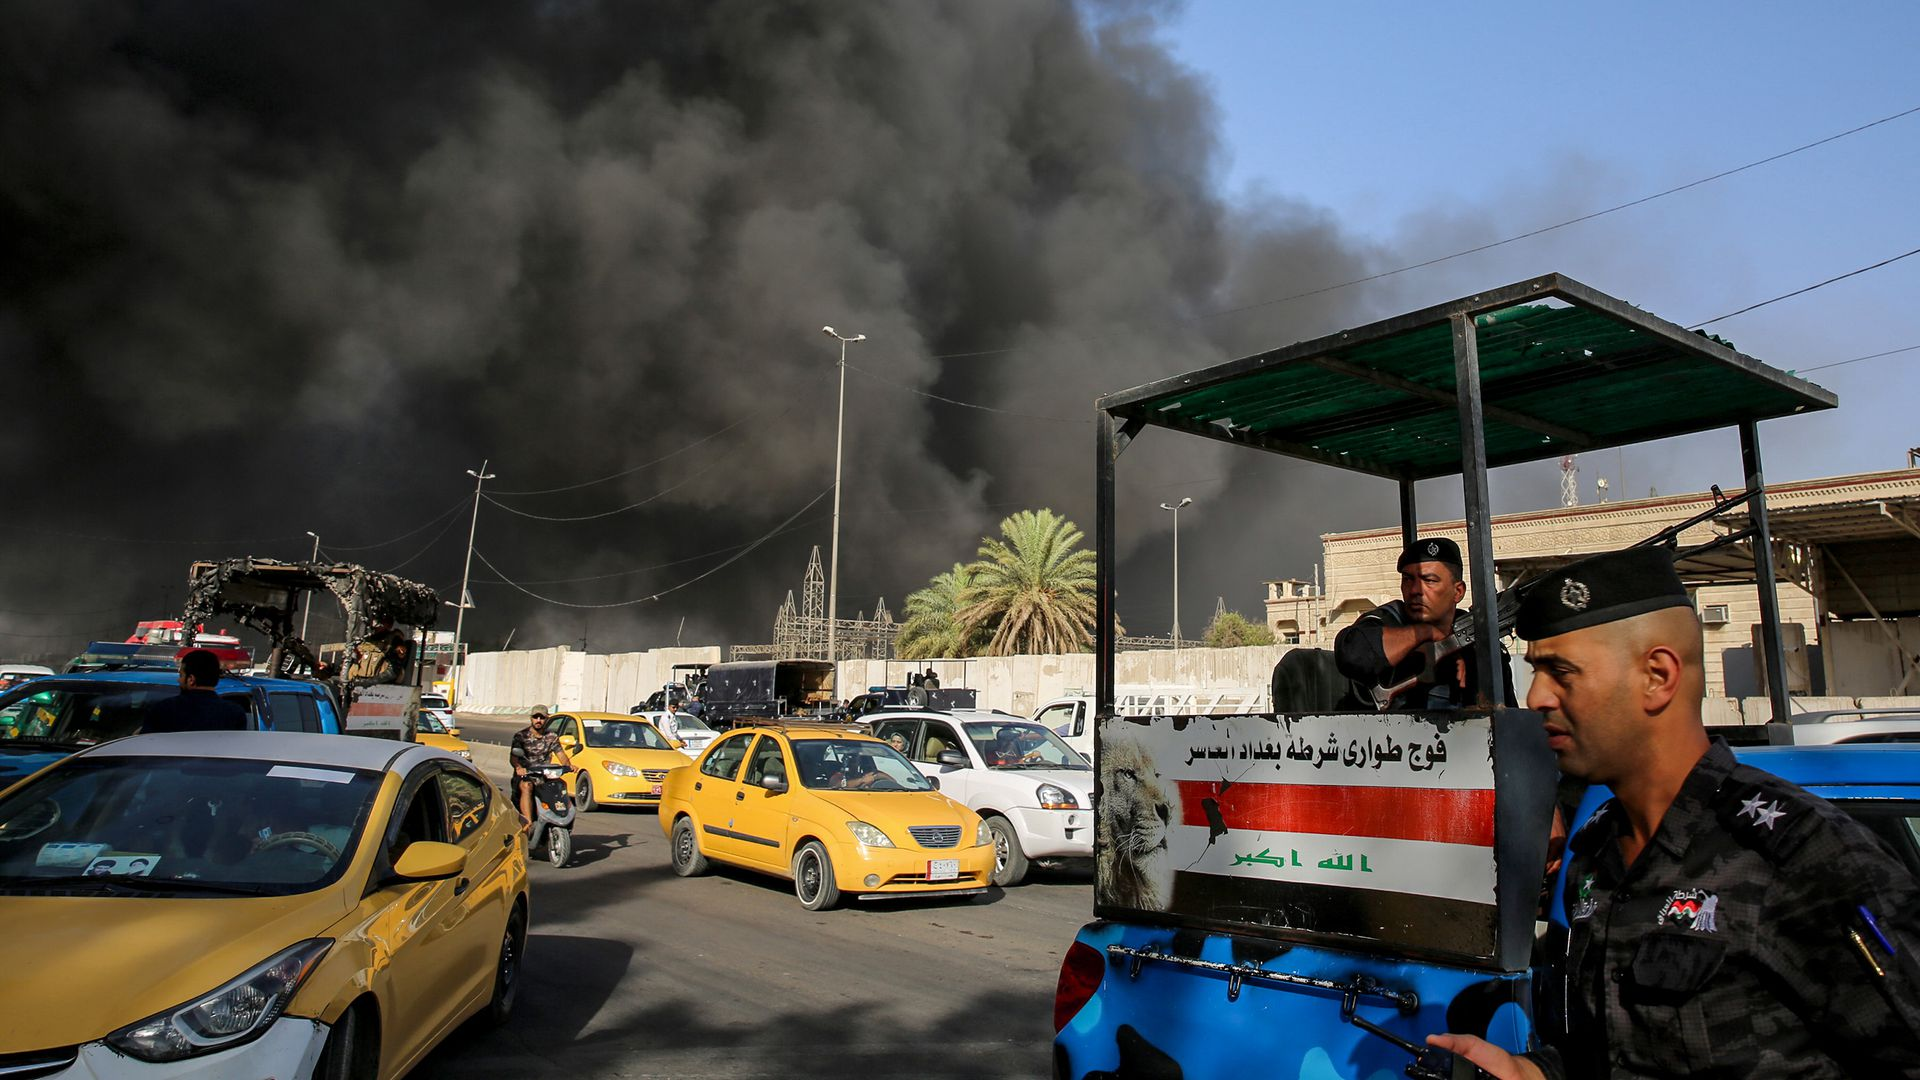 A fire truck at an election ballot warehouse in Baghdad.